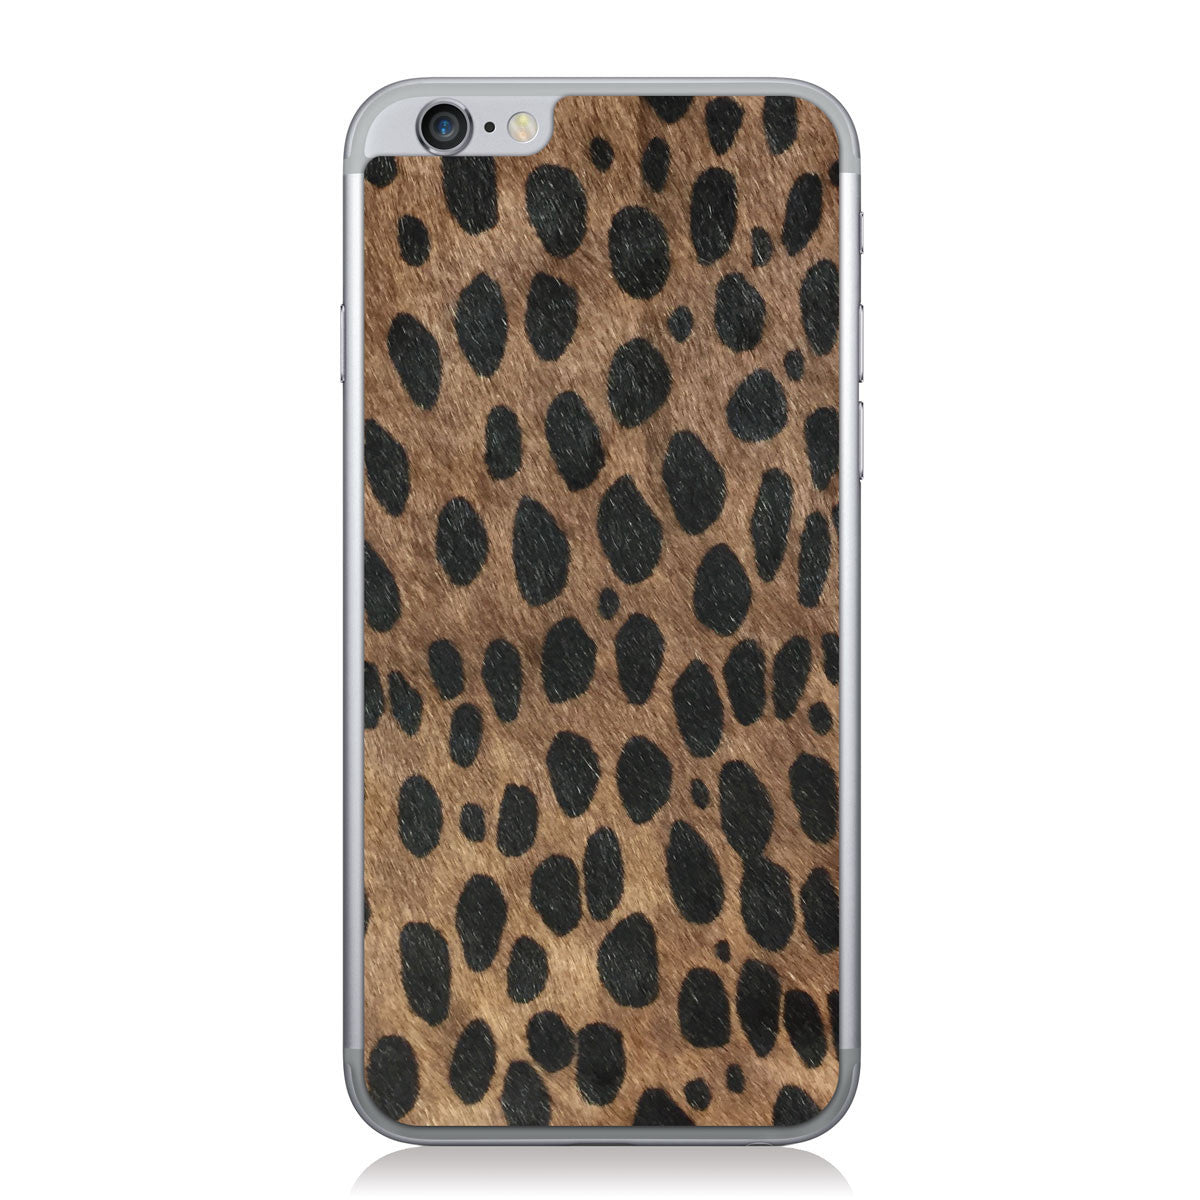 Brown Cheetah Print Pony iPhone 6/6s Leather Skin